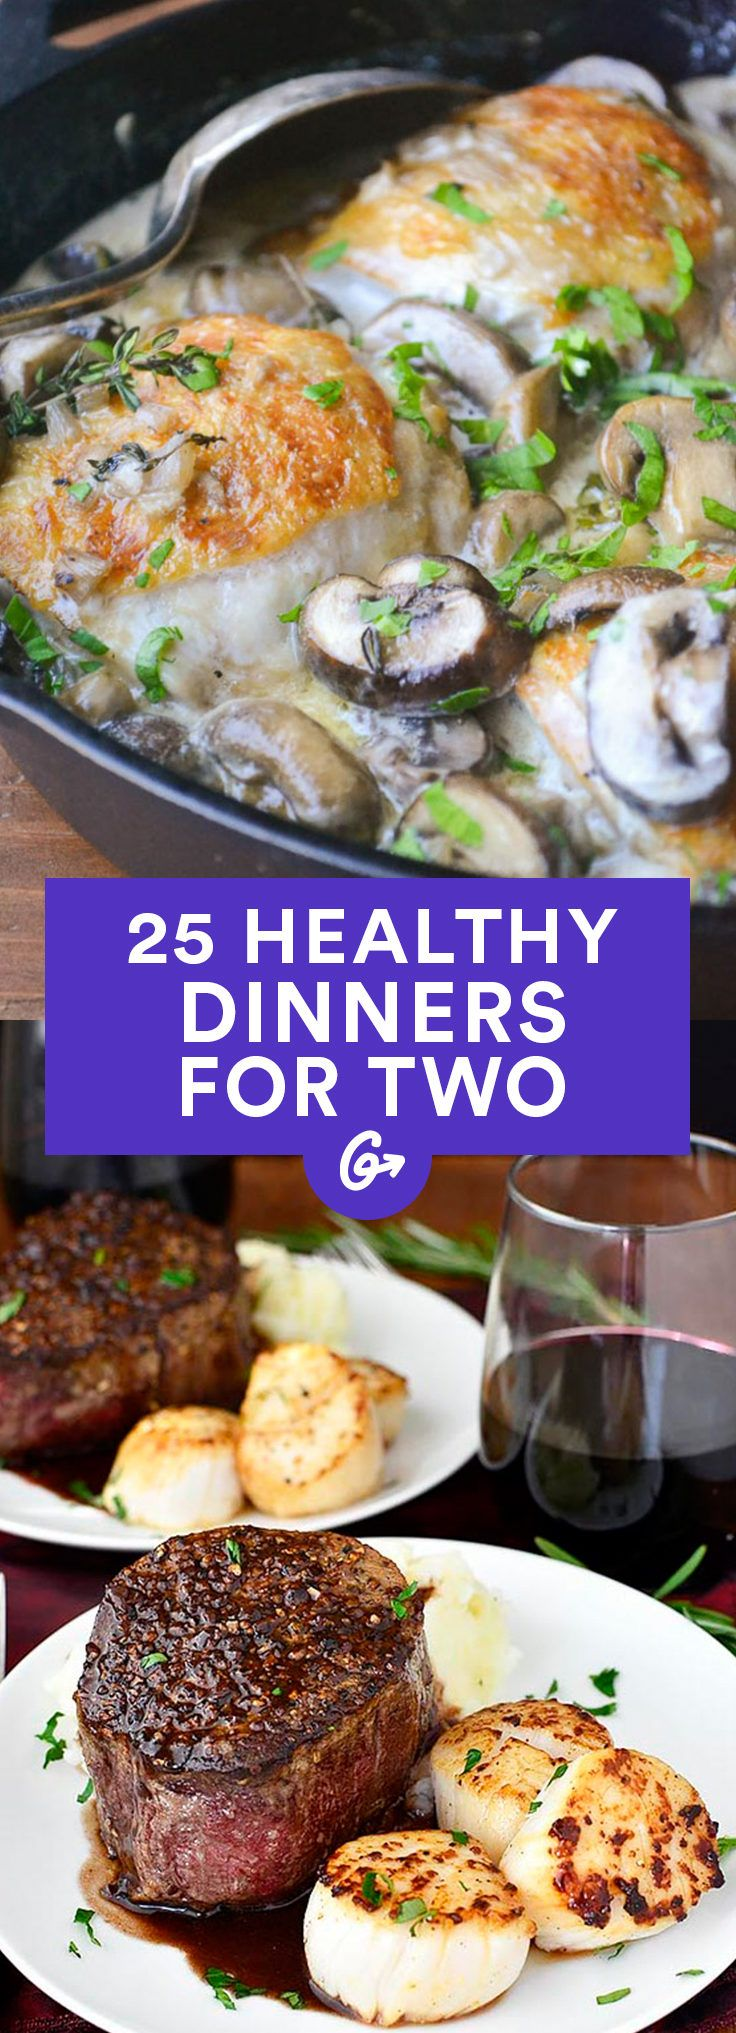 100 healthy dinner recipes on pinterest easy healthy for Dinner main course recipes